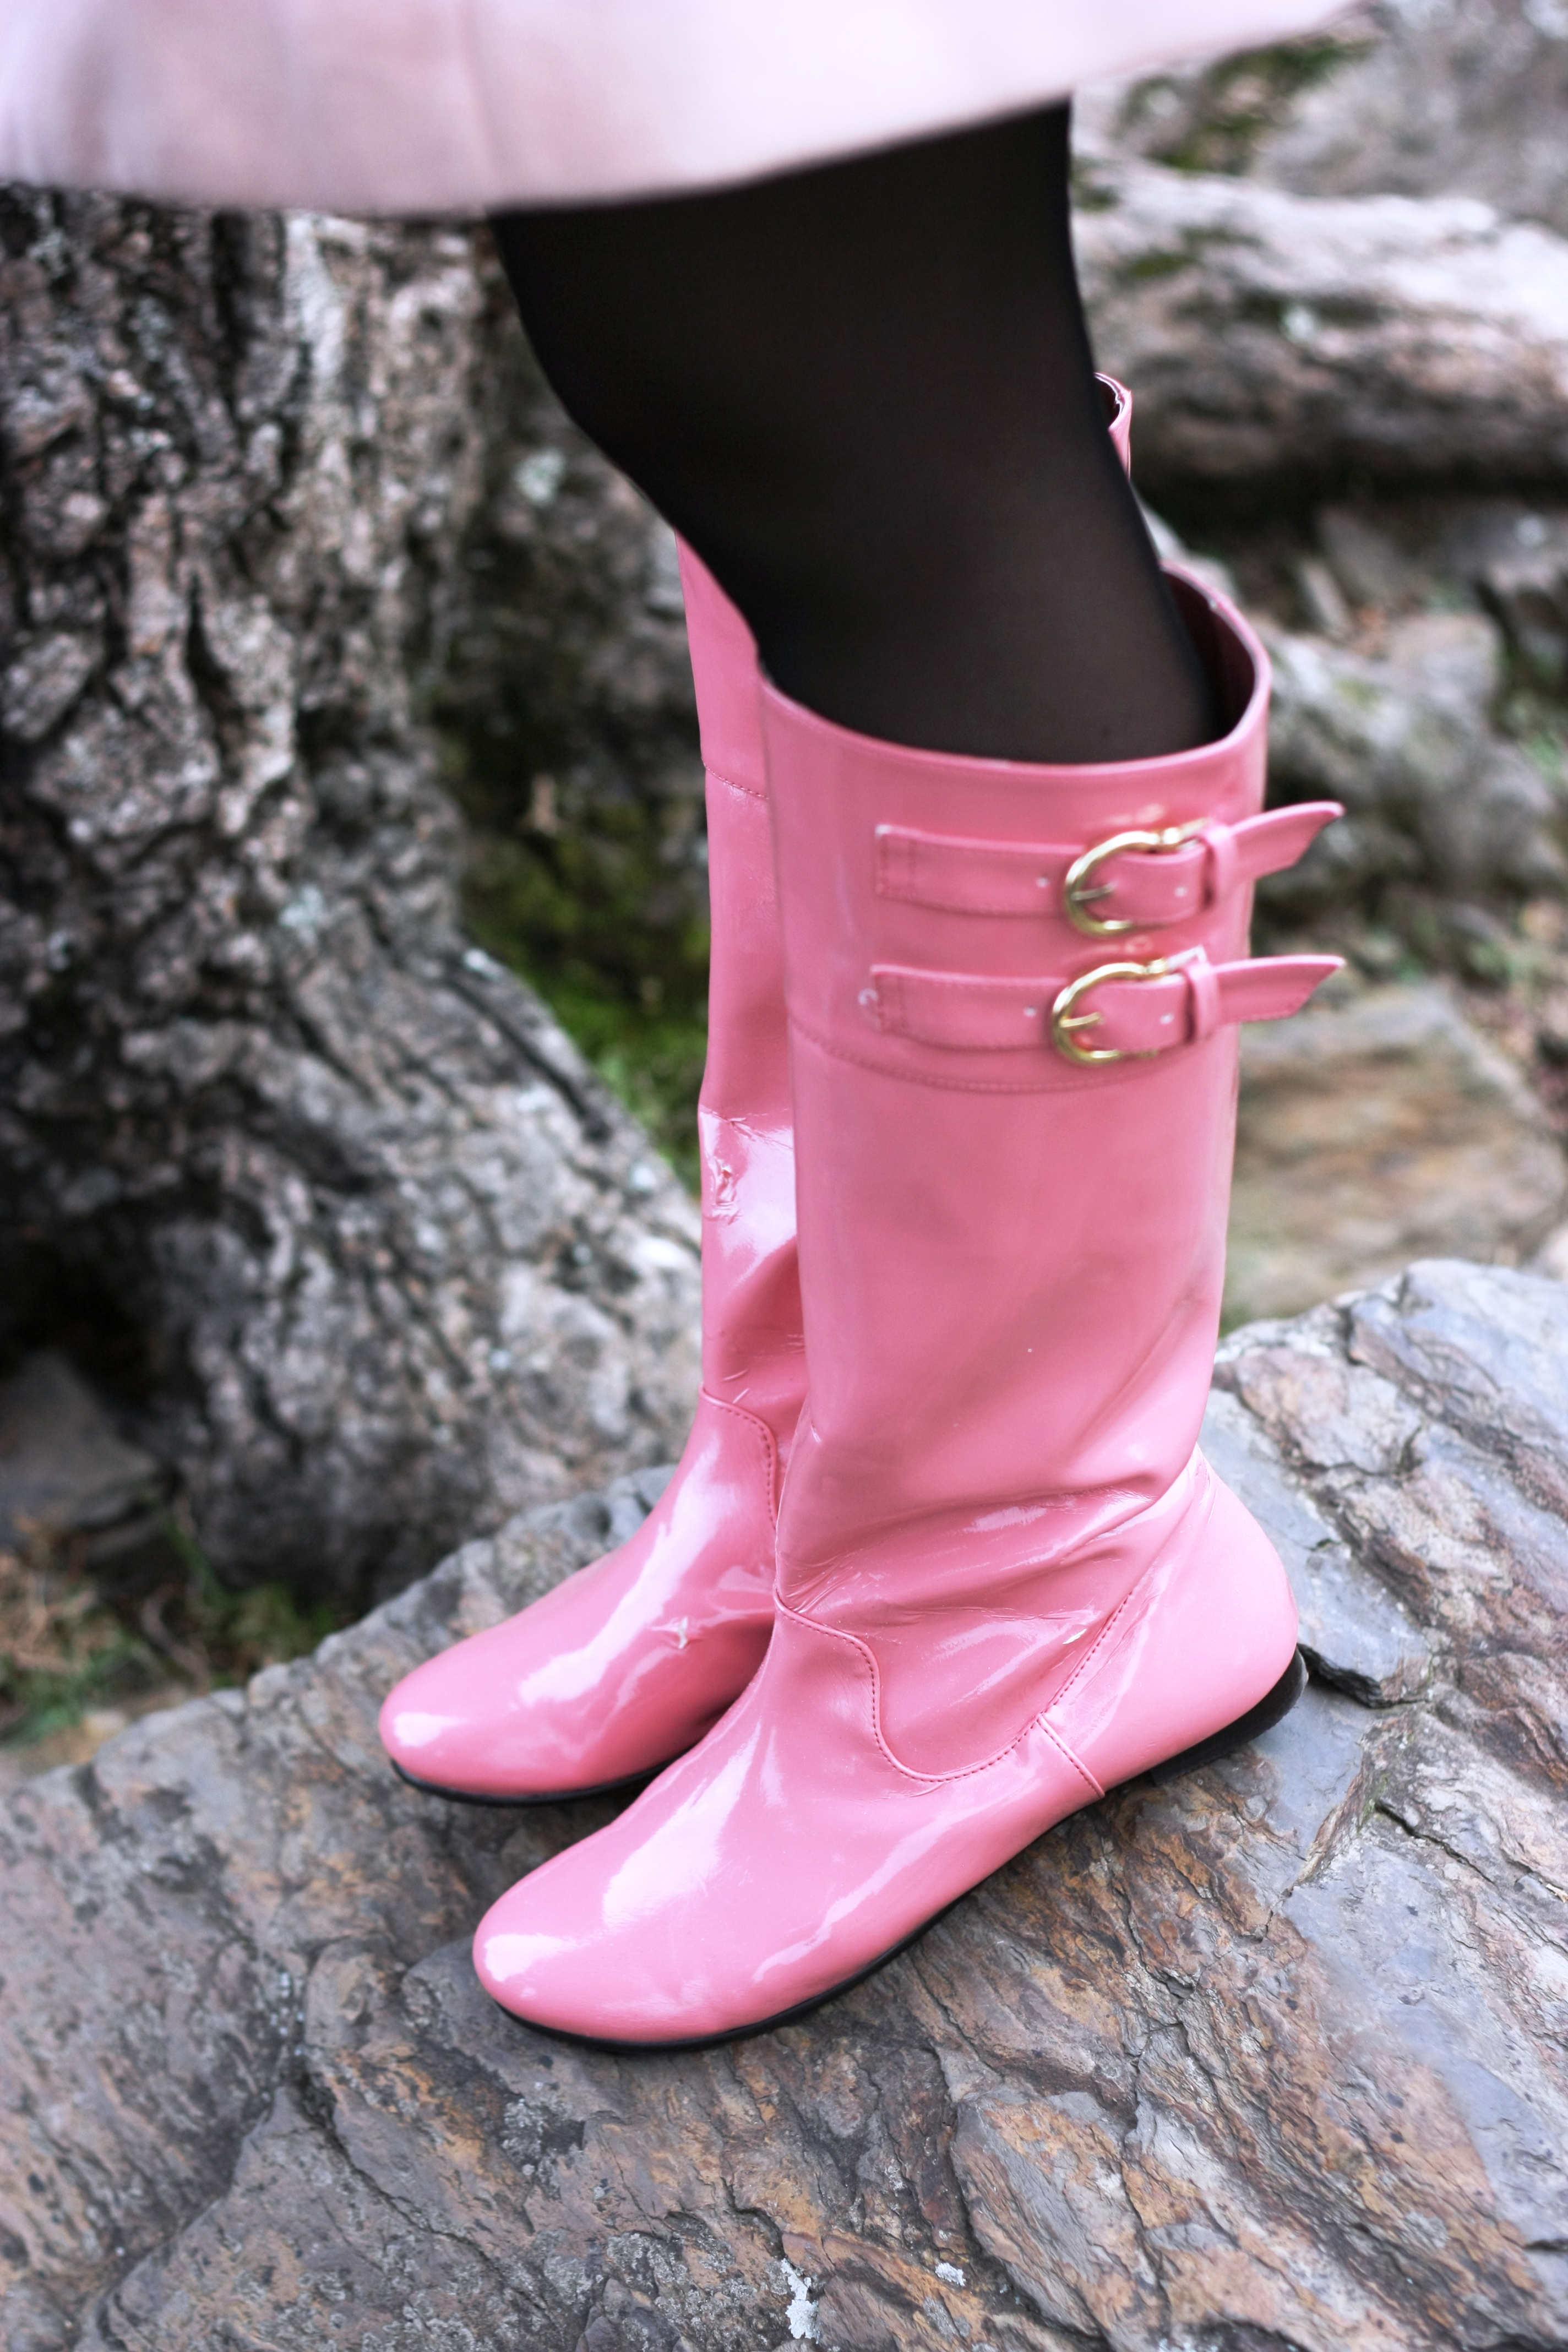 giantess pink boots 21 by boysgts on deviantart